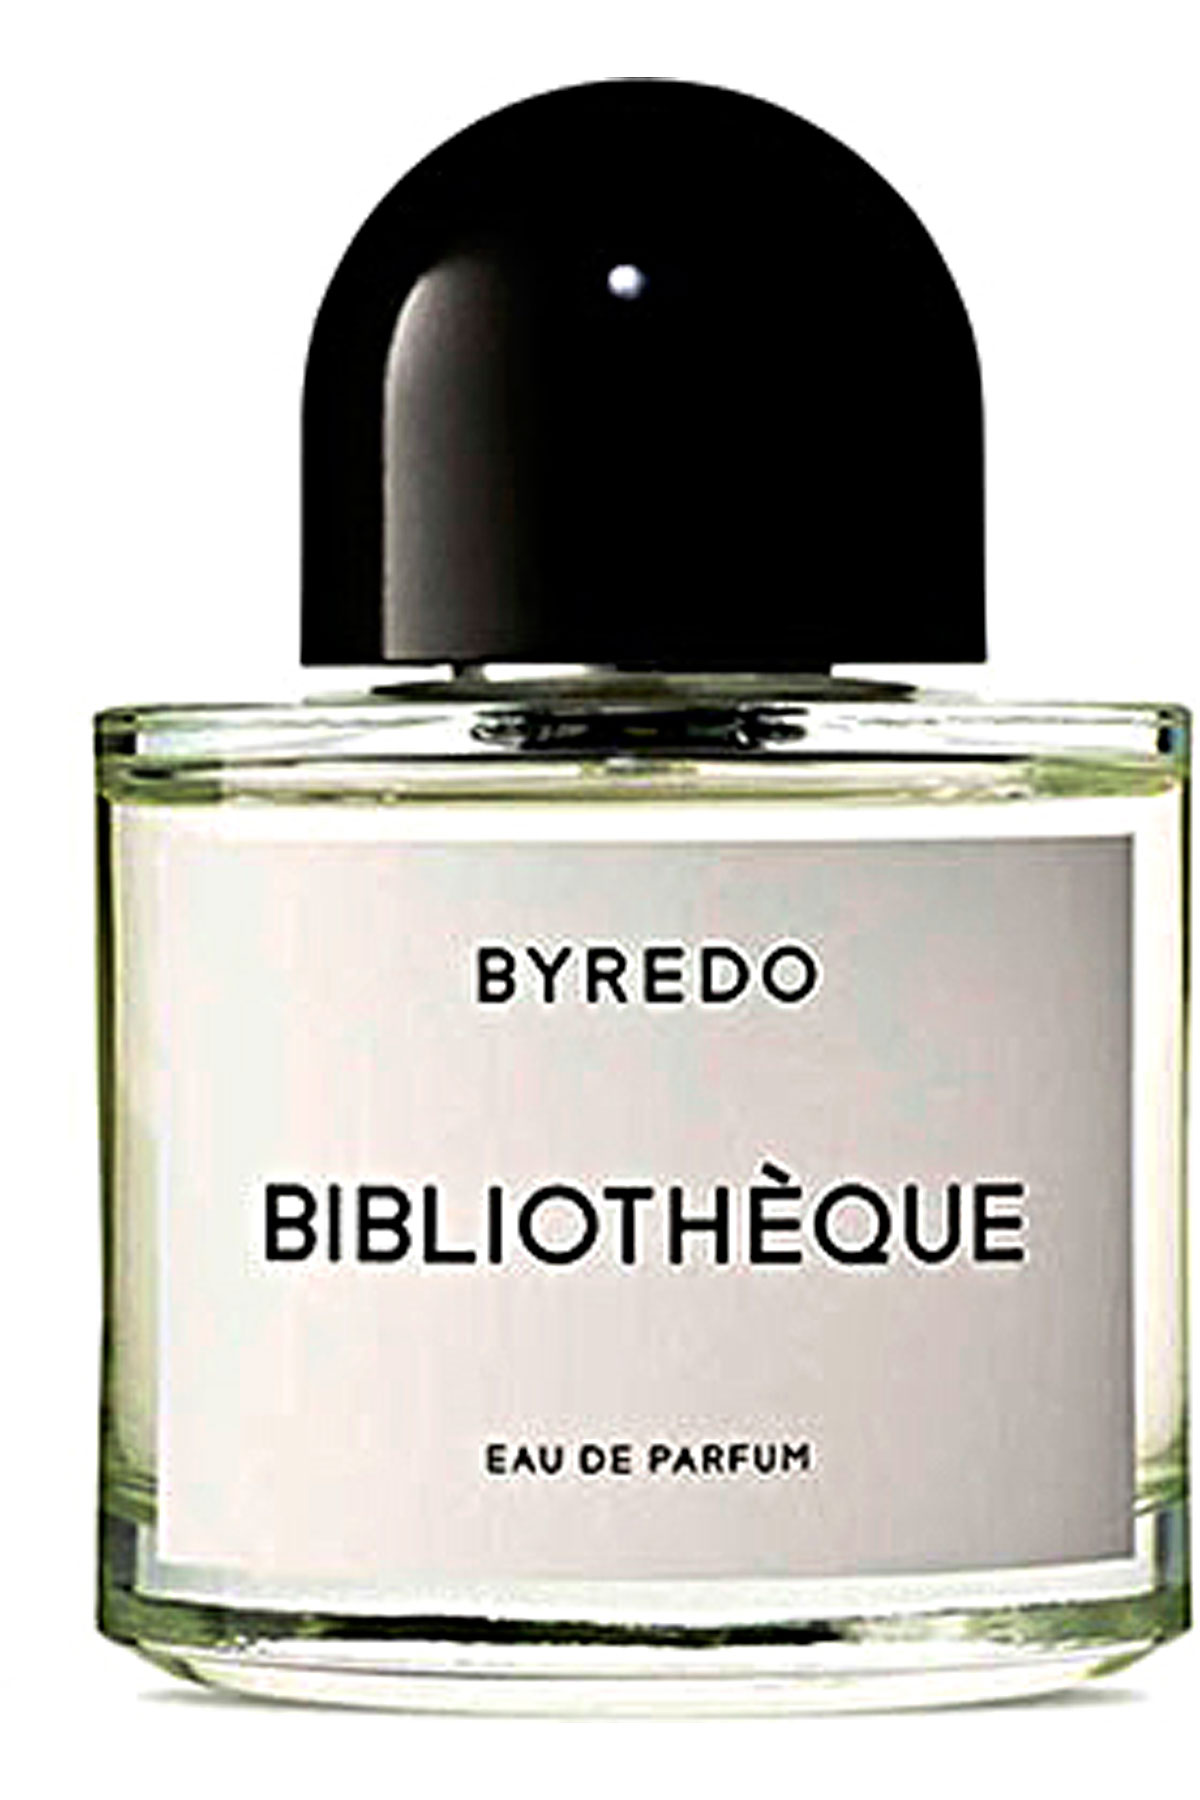 Byredo Fragrances for Women, Bibliotheque - Eau De Parfum - 50 Ml, 2019, 50 ml